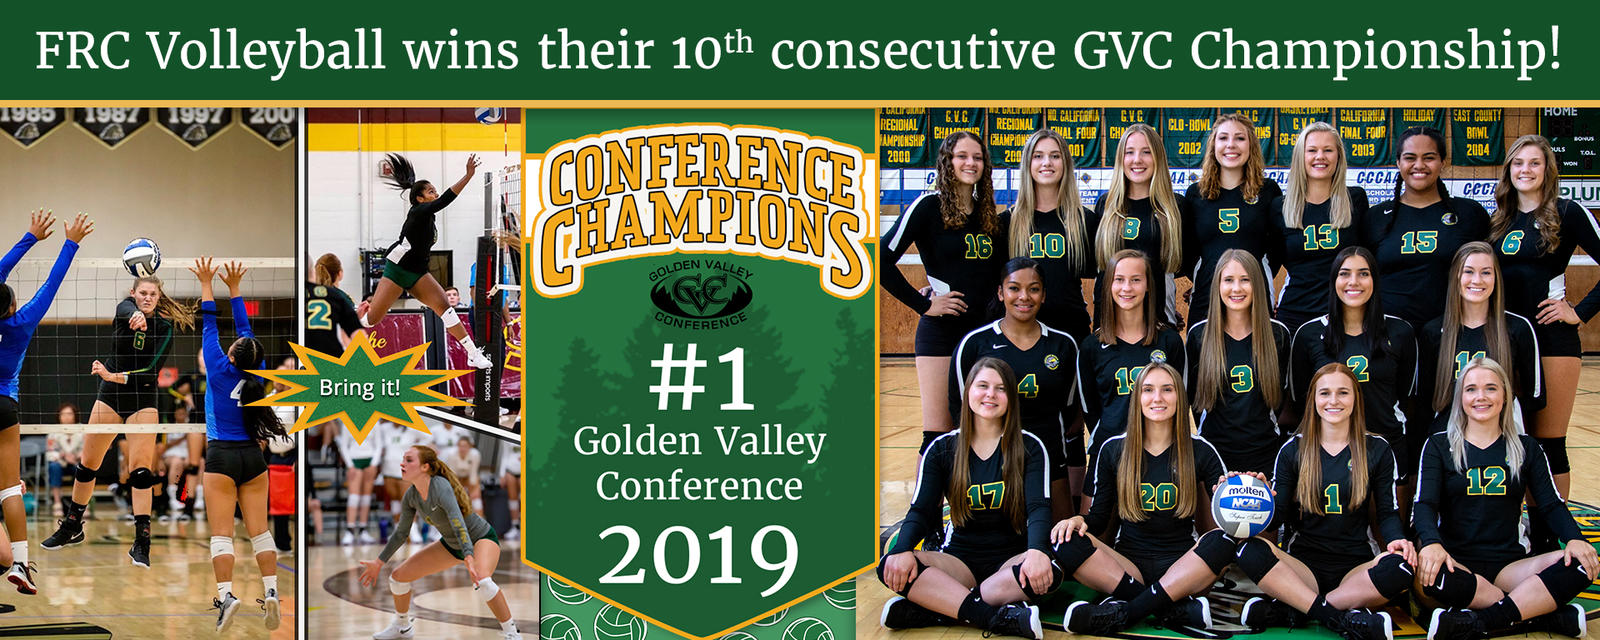 FRC Volleyball wins 10th consecutive GVC Championship